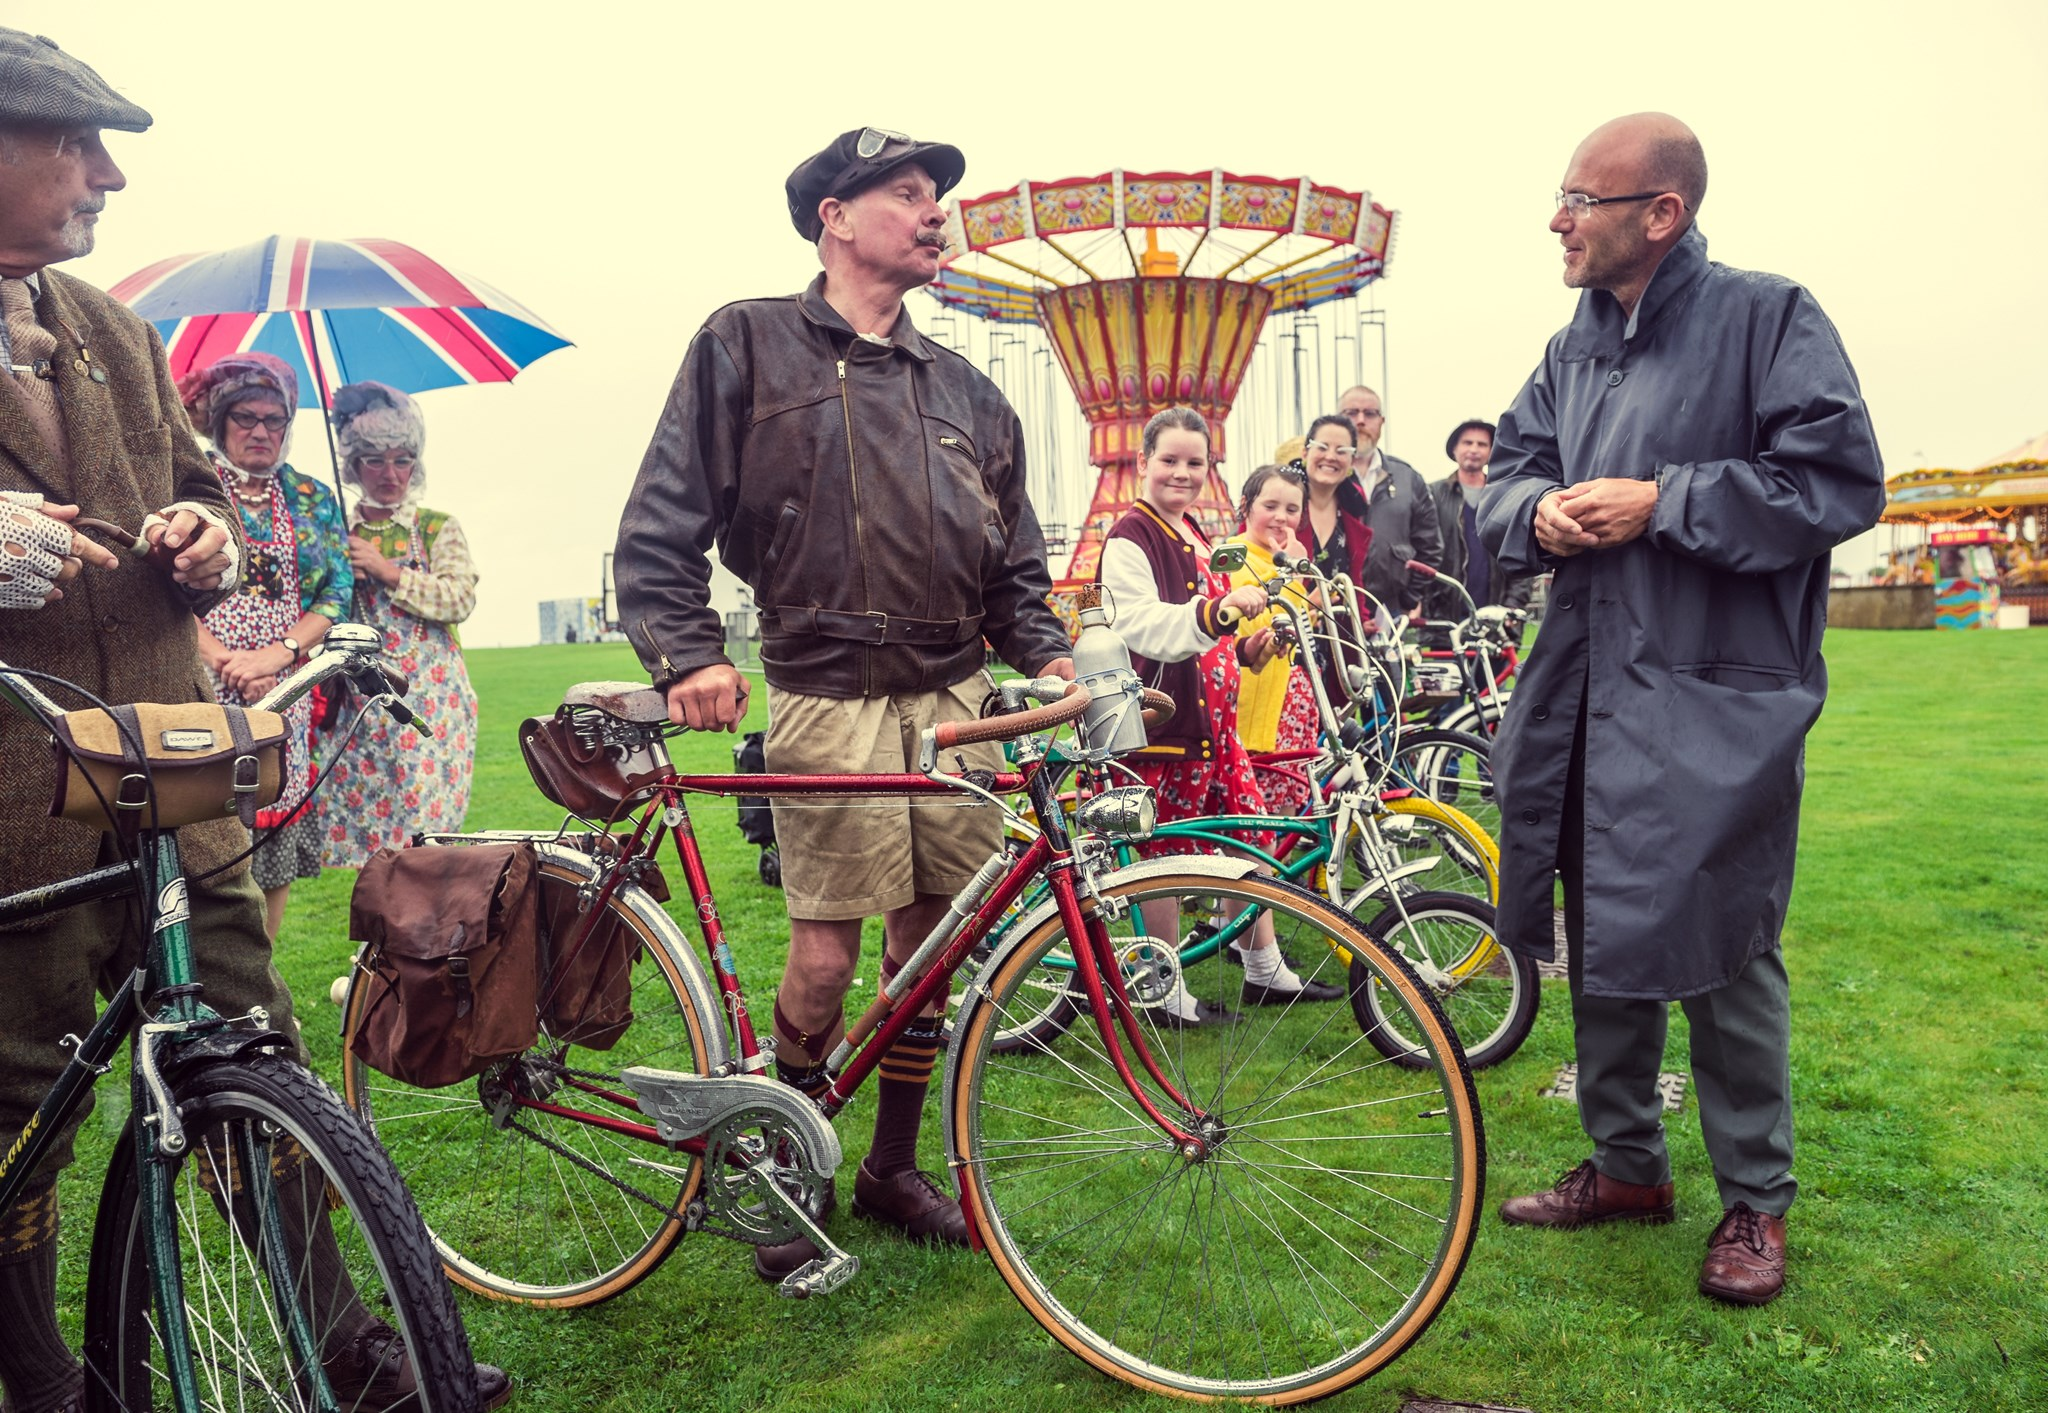 The vintage by the sea festival at The Midland, Morecambe